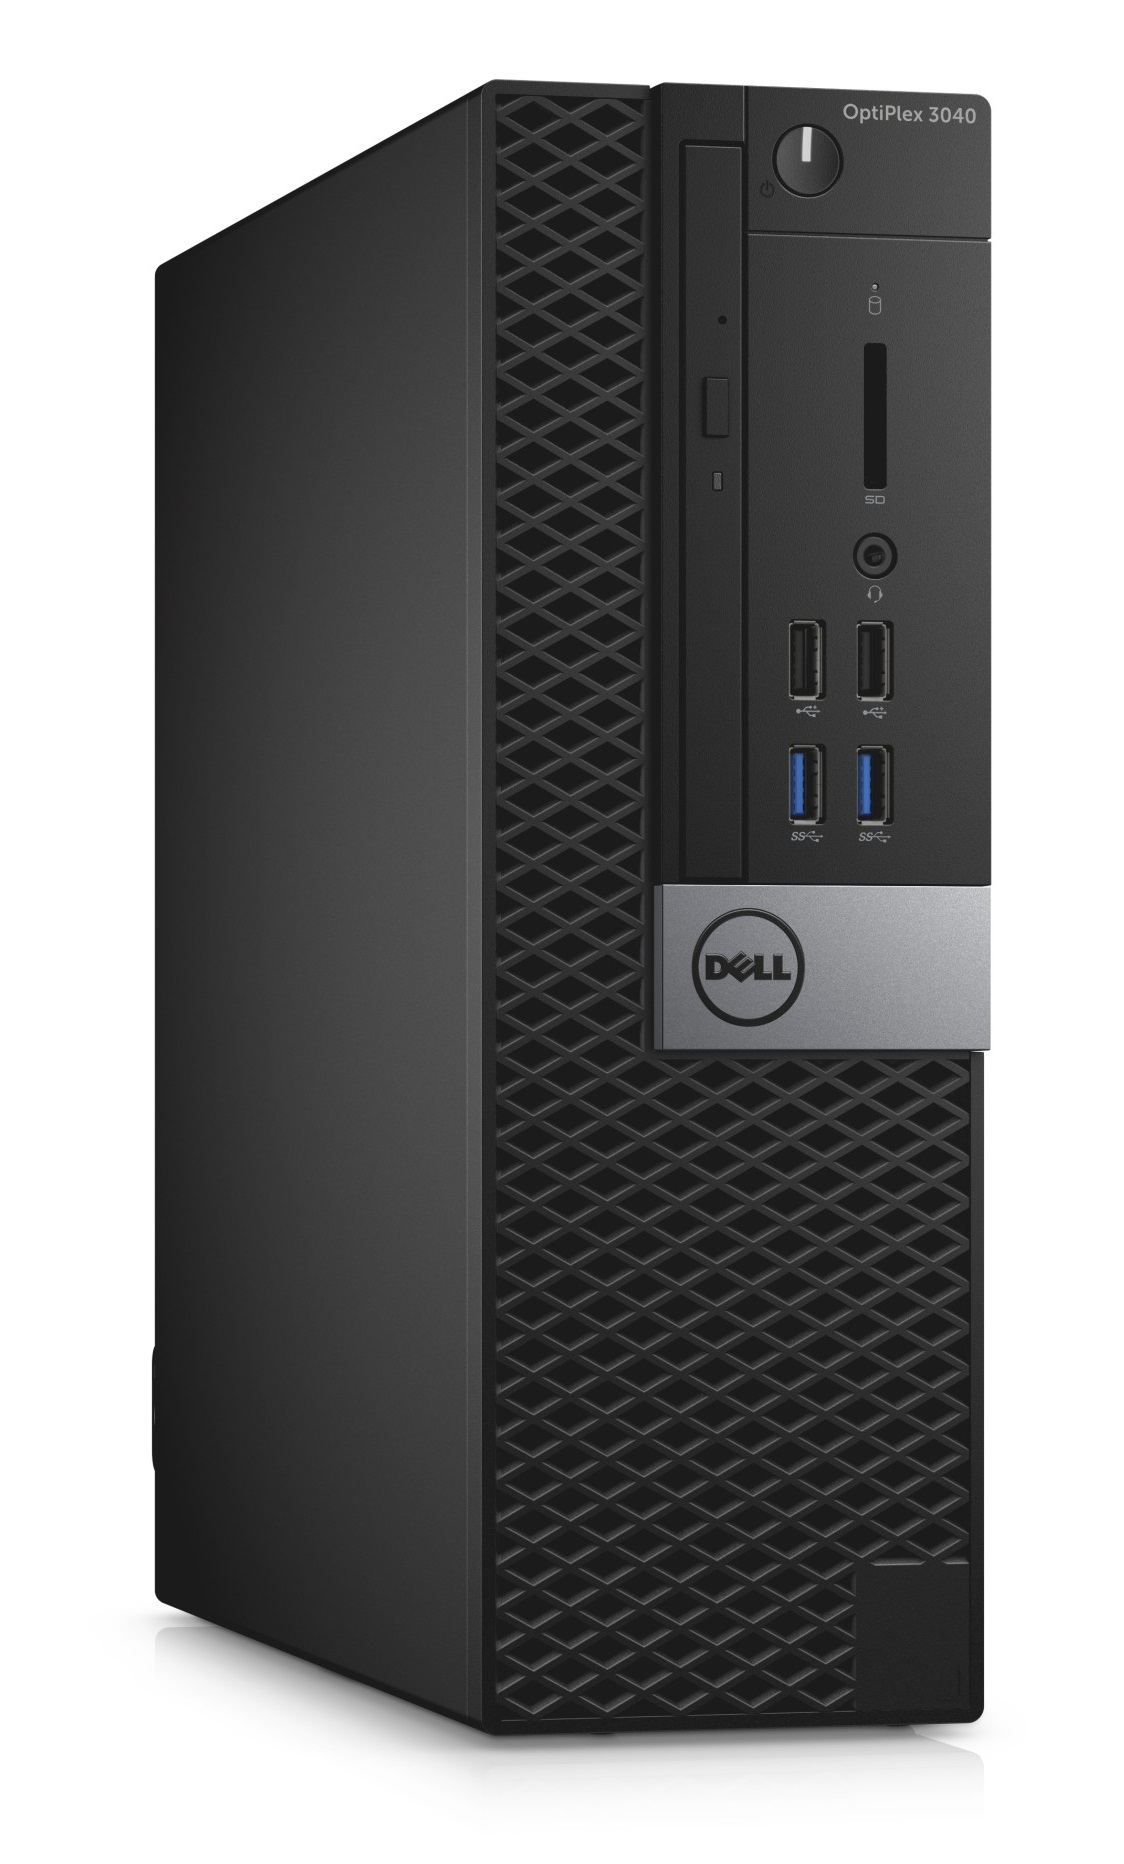 Dell Optiplex 3040S i5-6500/8GB/256GB SSD/MCR/HDMI/DP/DVD-RW/W10P/3RNBD/Černý